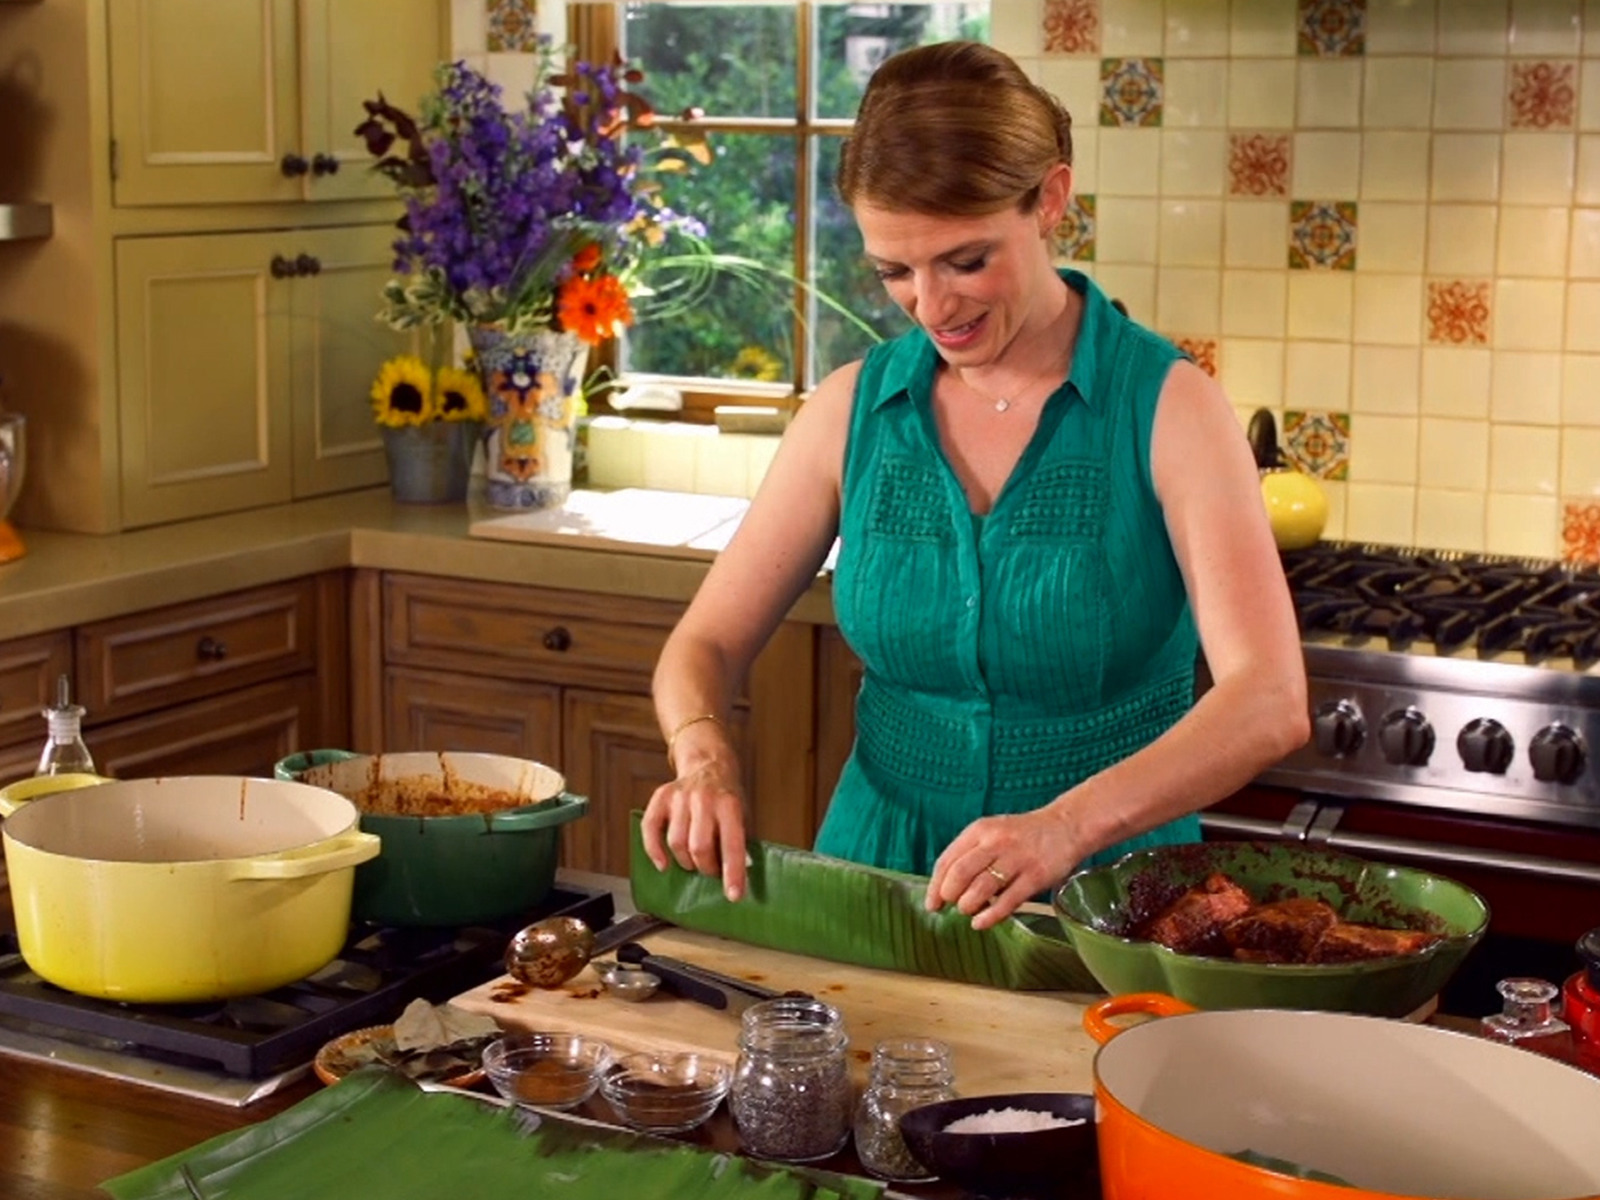 Watch Pati S Mexican Table Season 3 Episode 9 Pot Luck